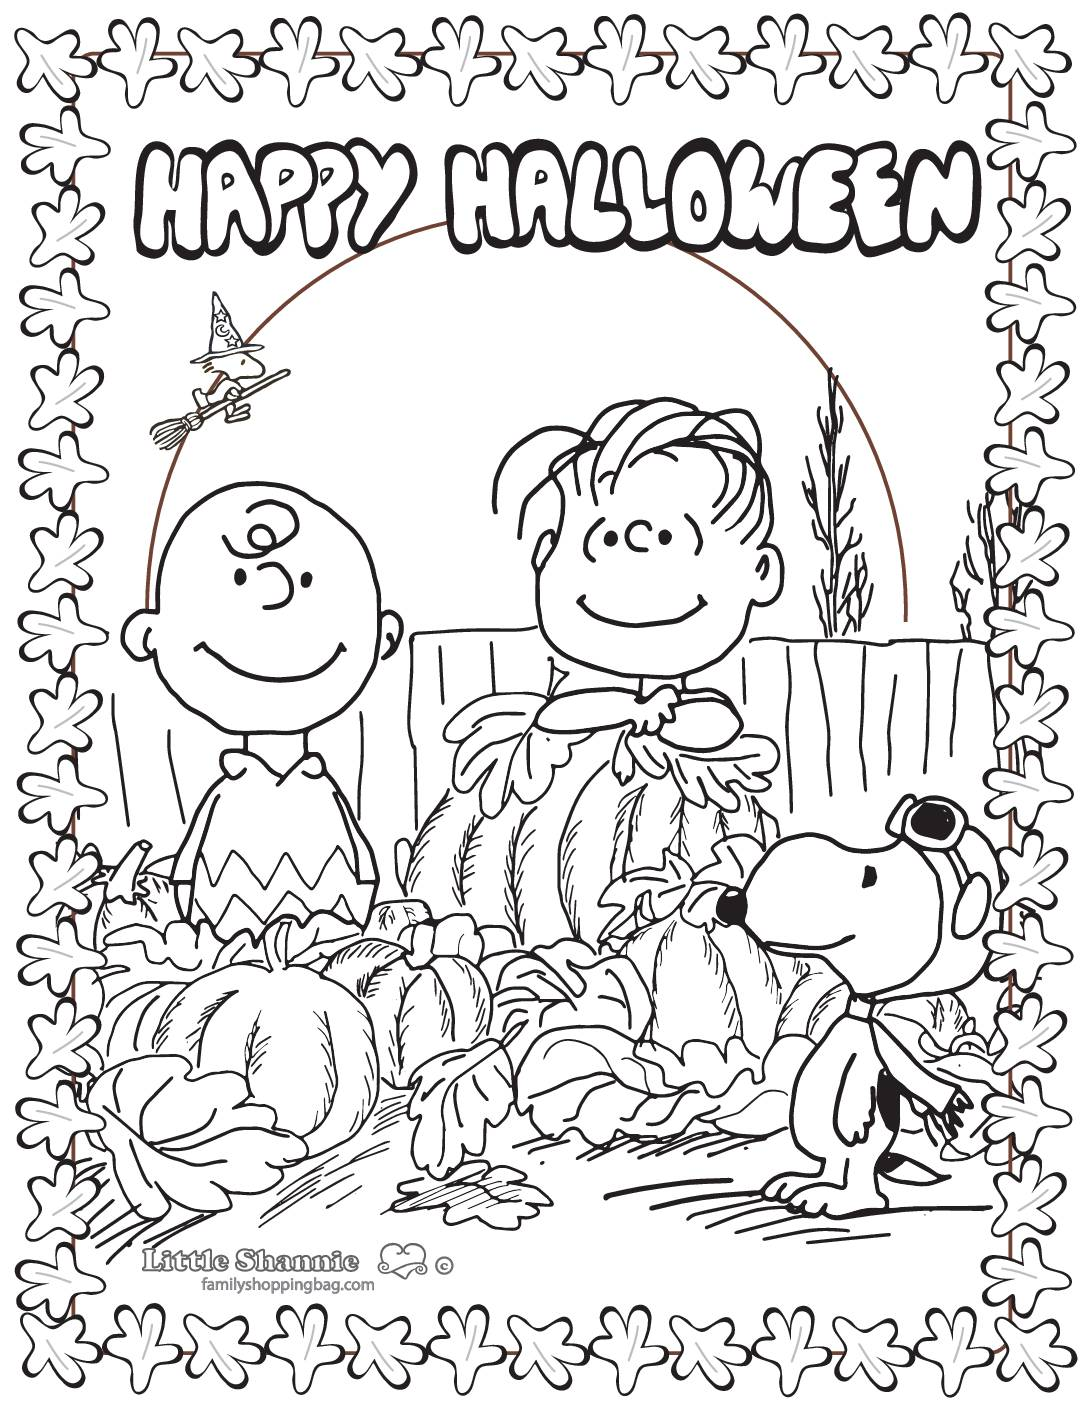 Coloring Page 6 Peanuts Halloween